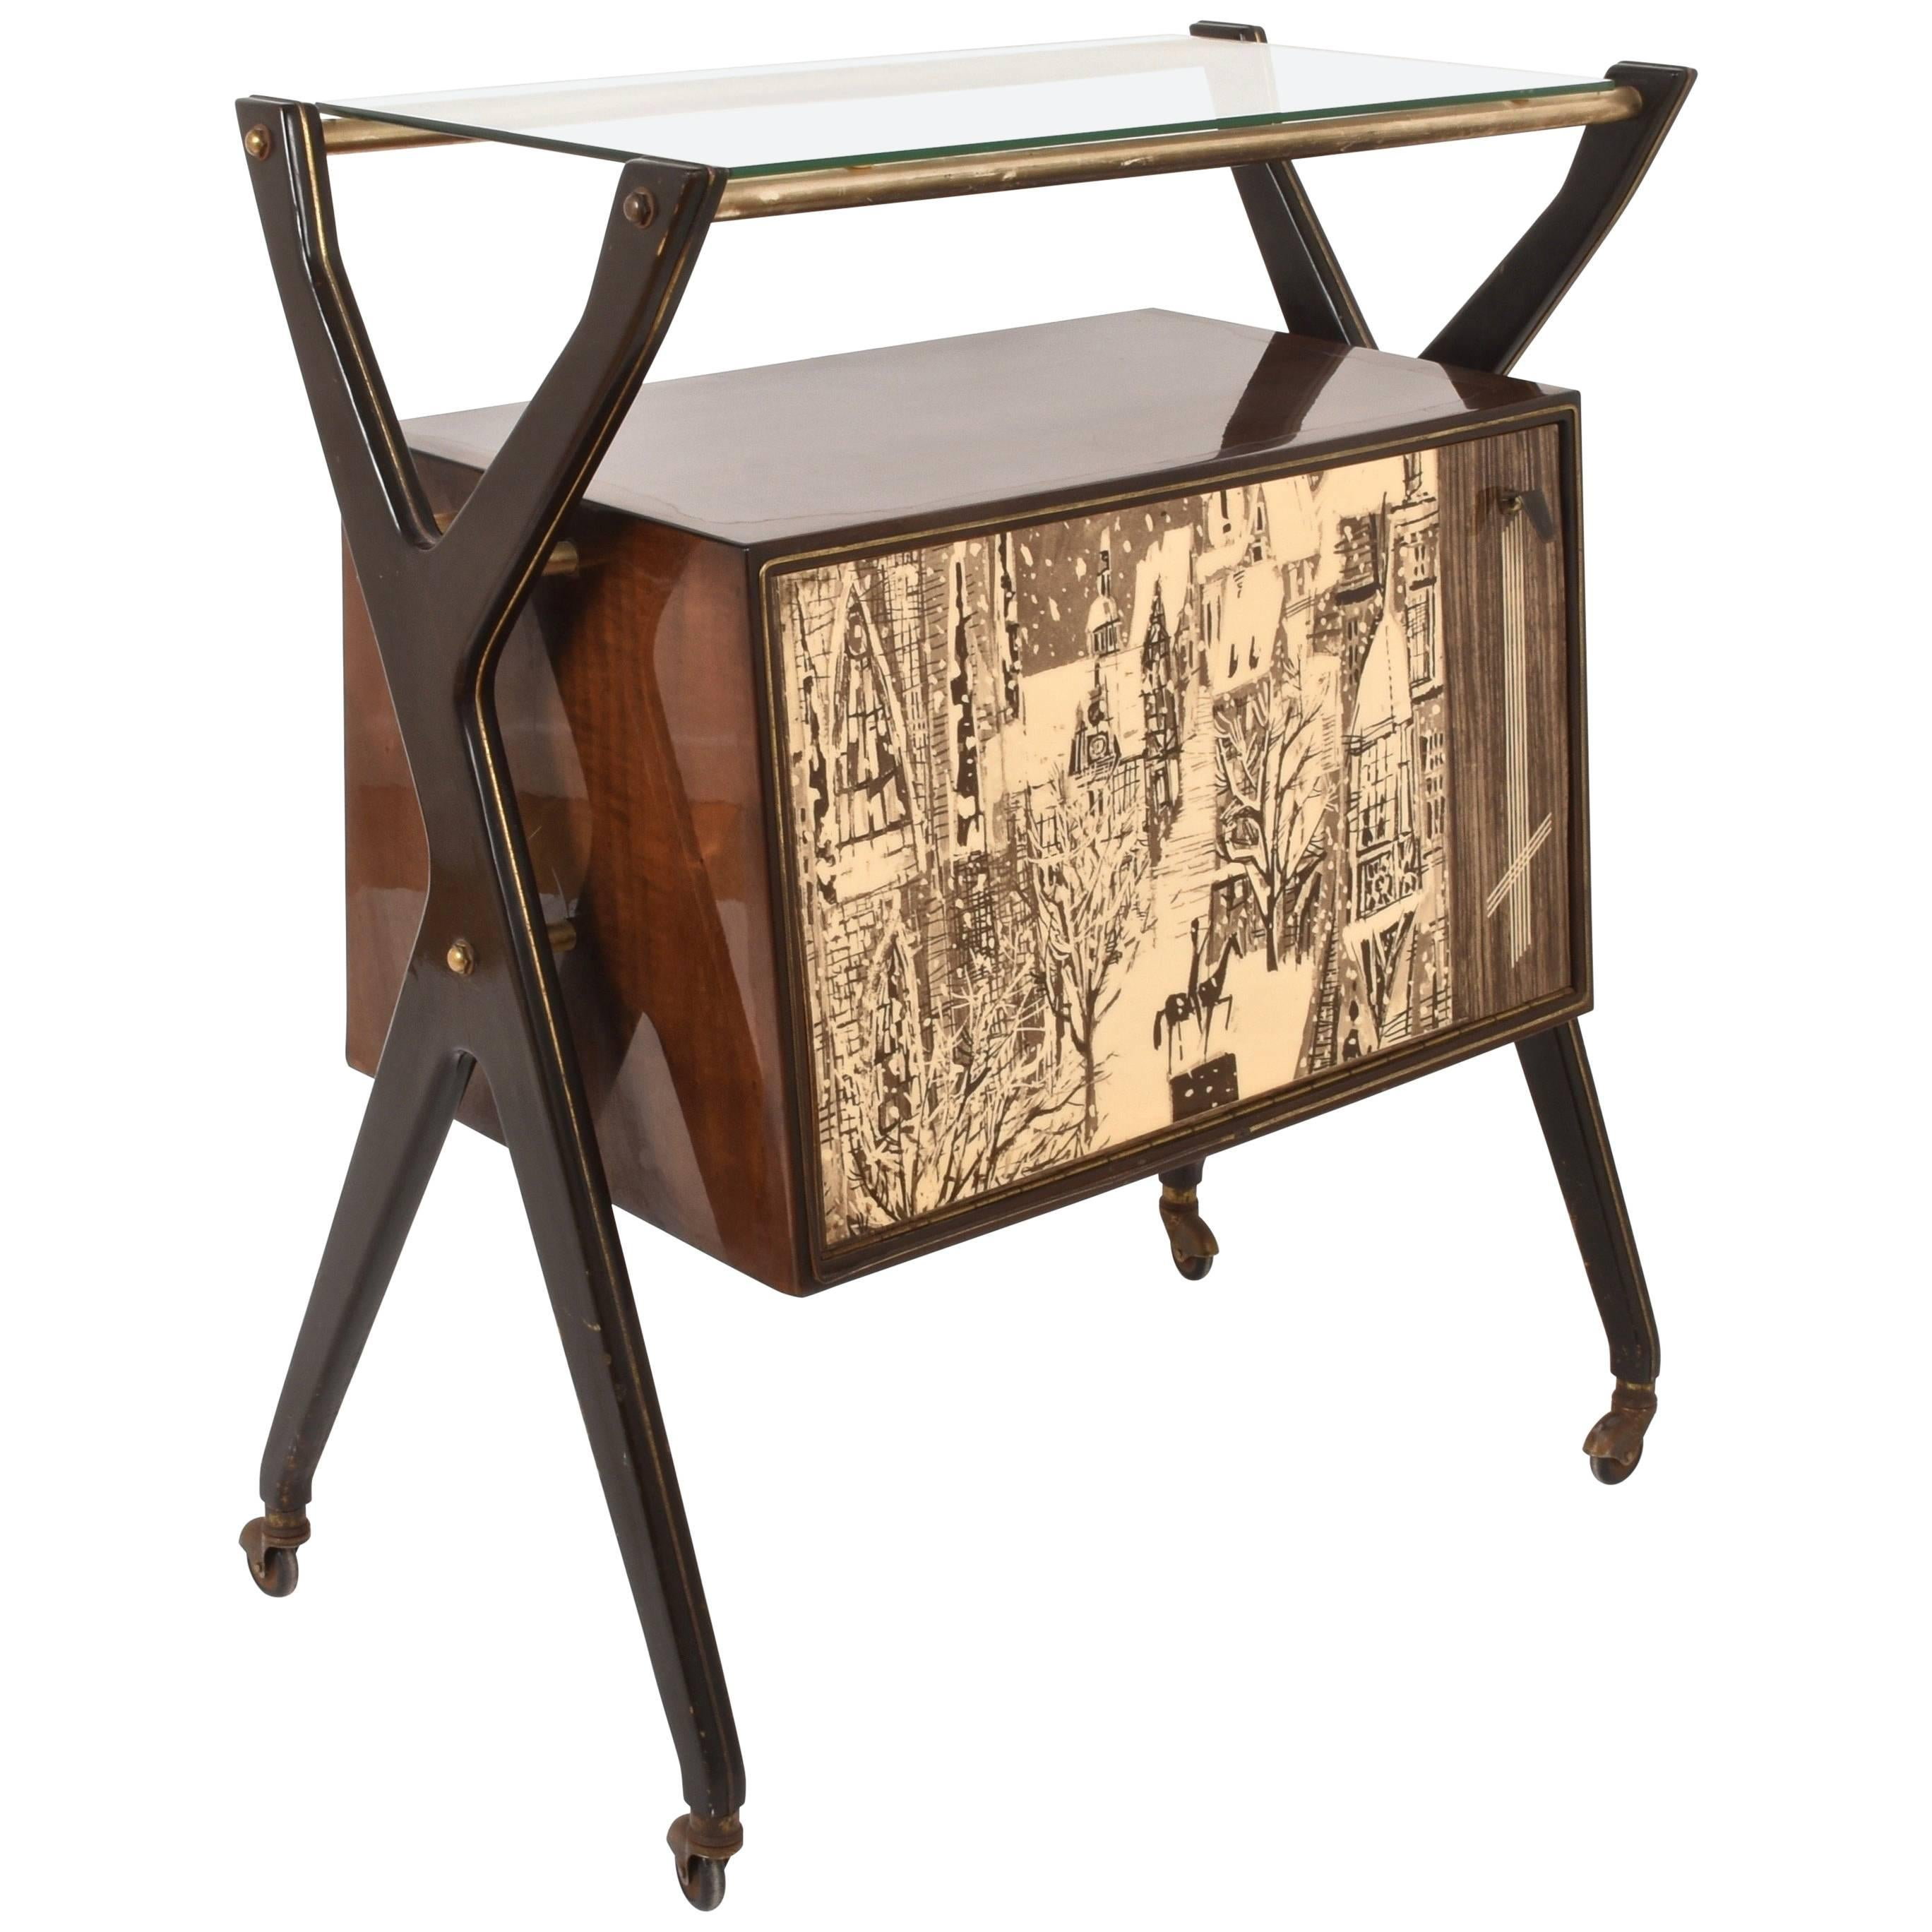 Attributed to Cesare Lacca Dry Bar Trolley, Italy, 1950s